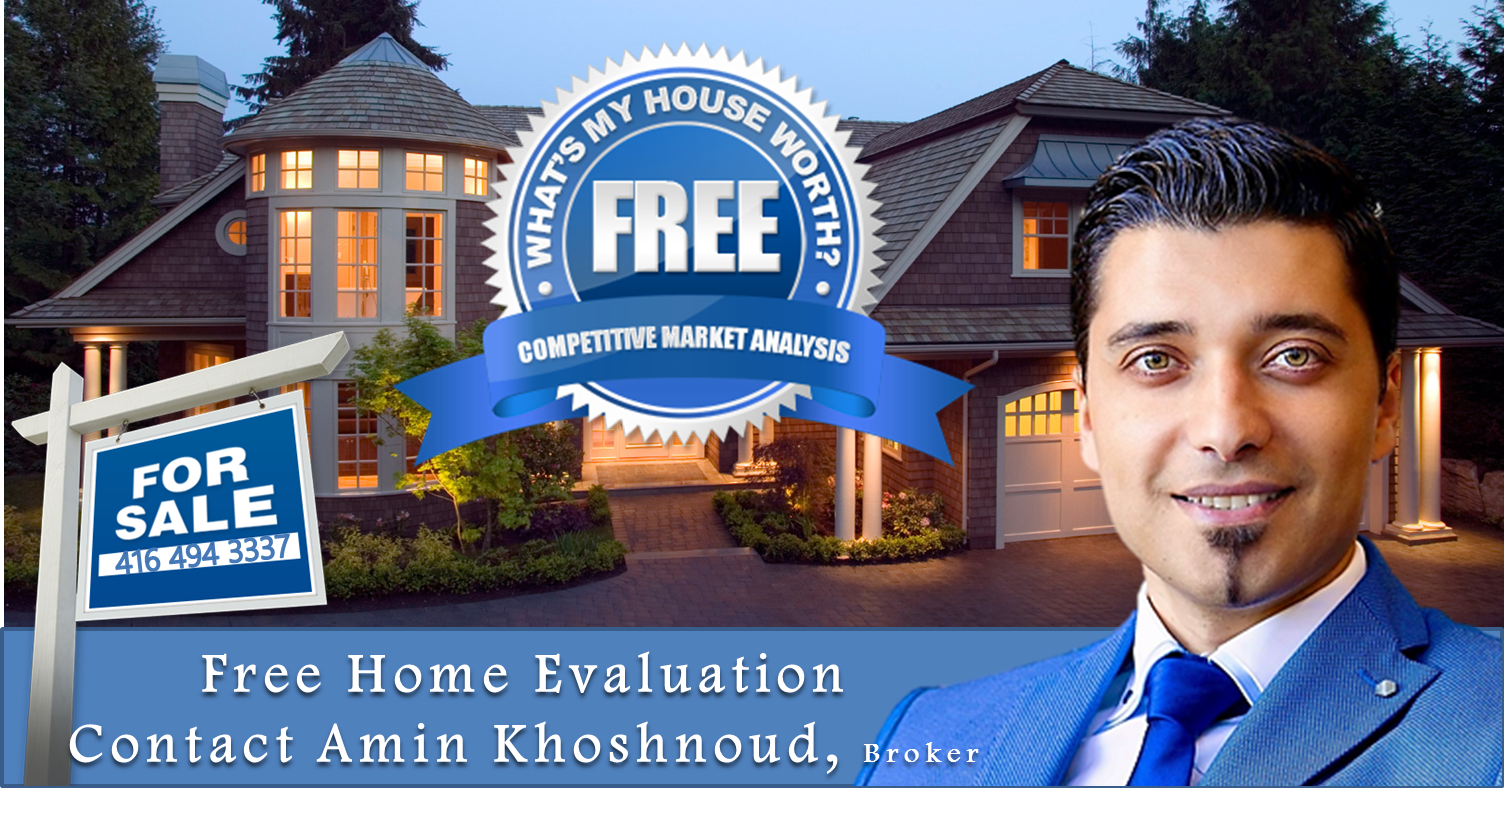 My Homes value, Free Home valuation, free home price estimate, how much my home worth, my home value,